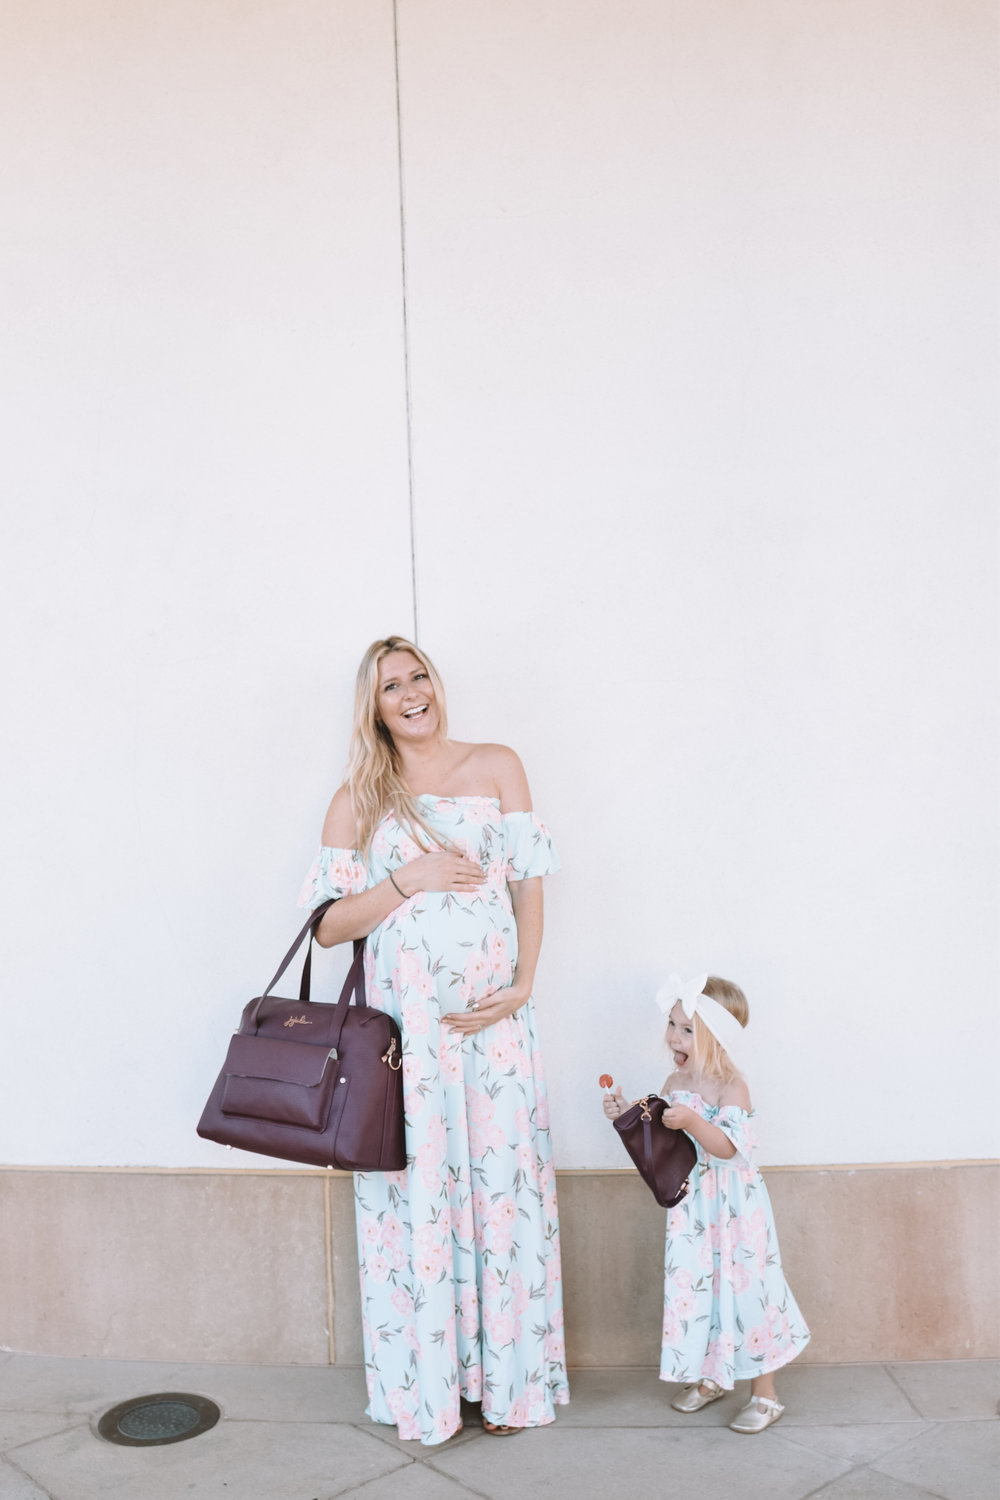 Mommy and Me Dresses - Mommy and Me Purses - The Overwhelmed Mommy Blogger